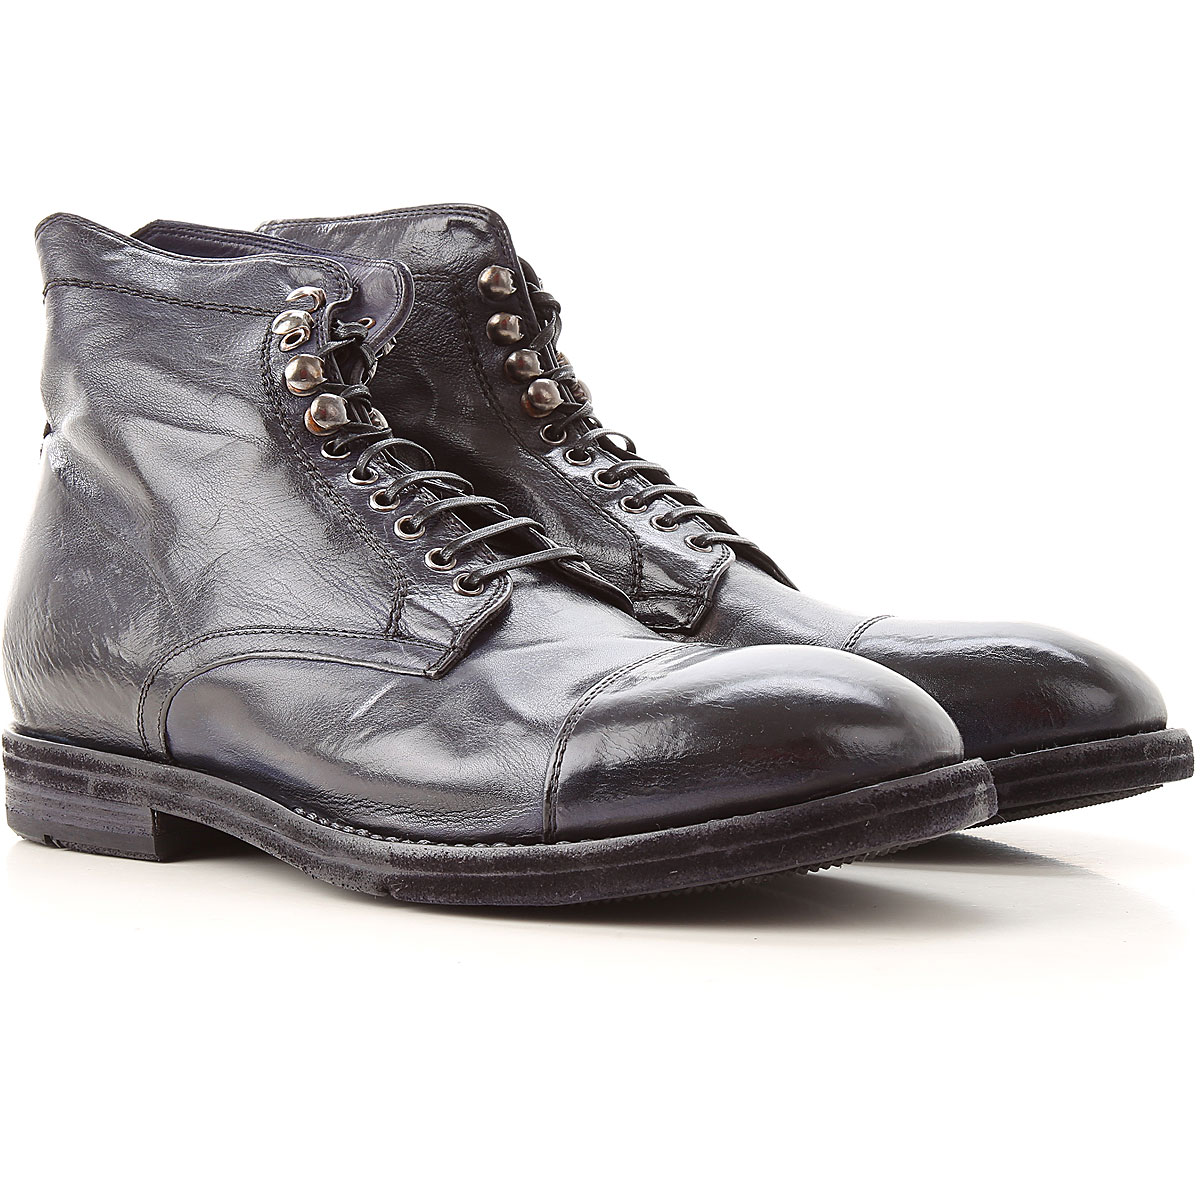 Lemargo Boots for Men, Booties On Sale, Leather, Leather, 2019, 10.5 11 11.5 12 7 7.5 8 8.5 9 9.5